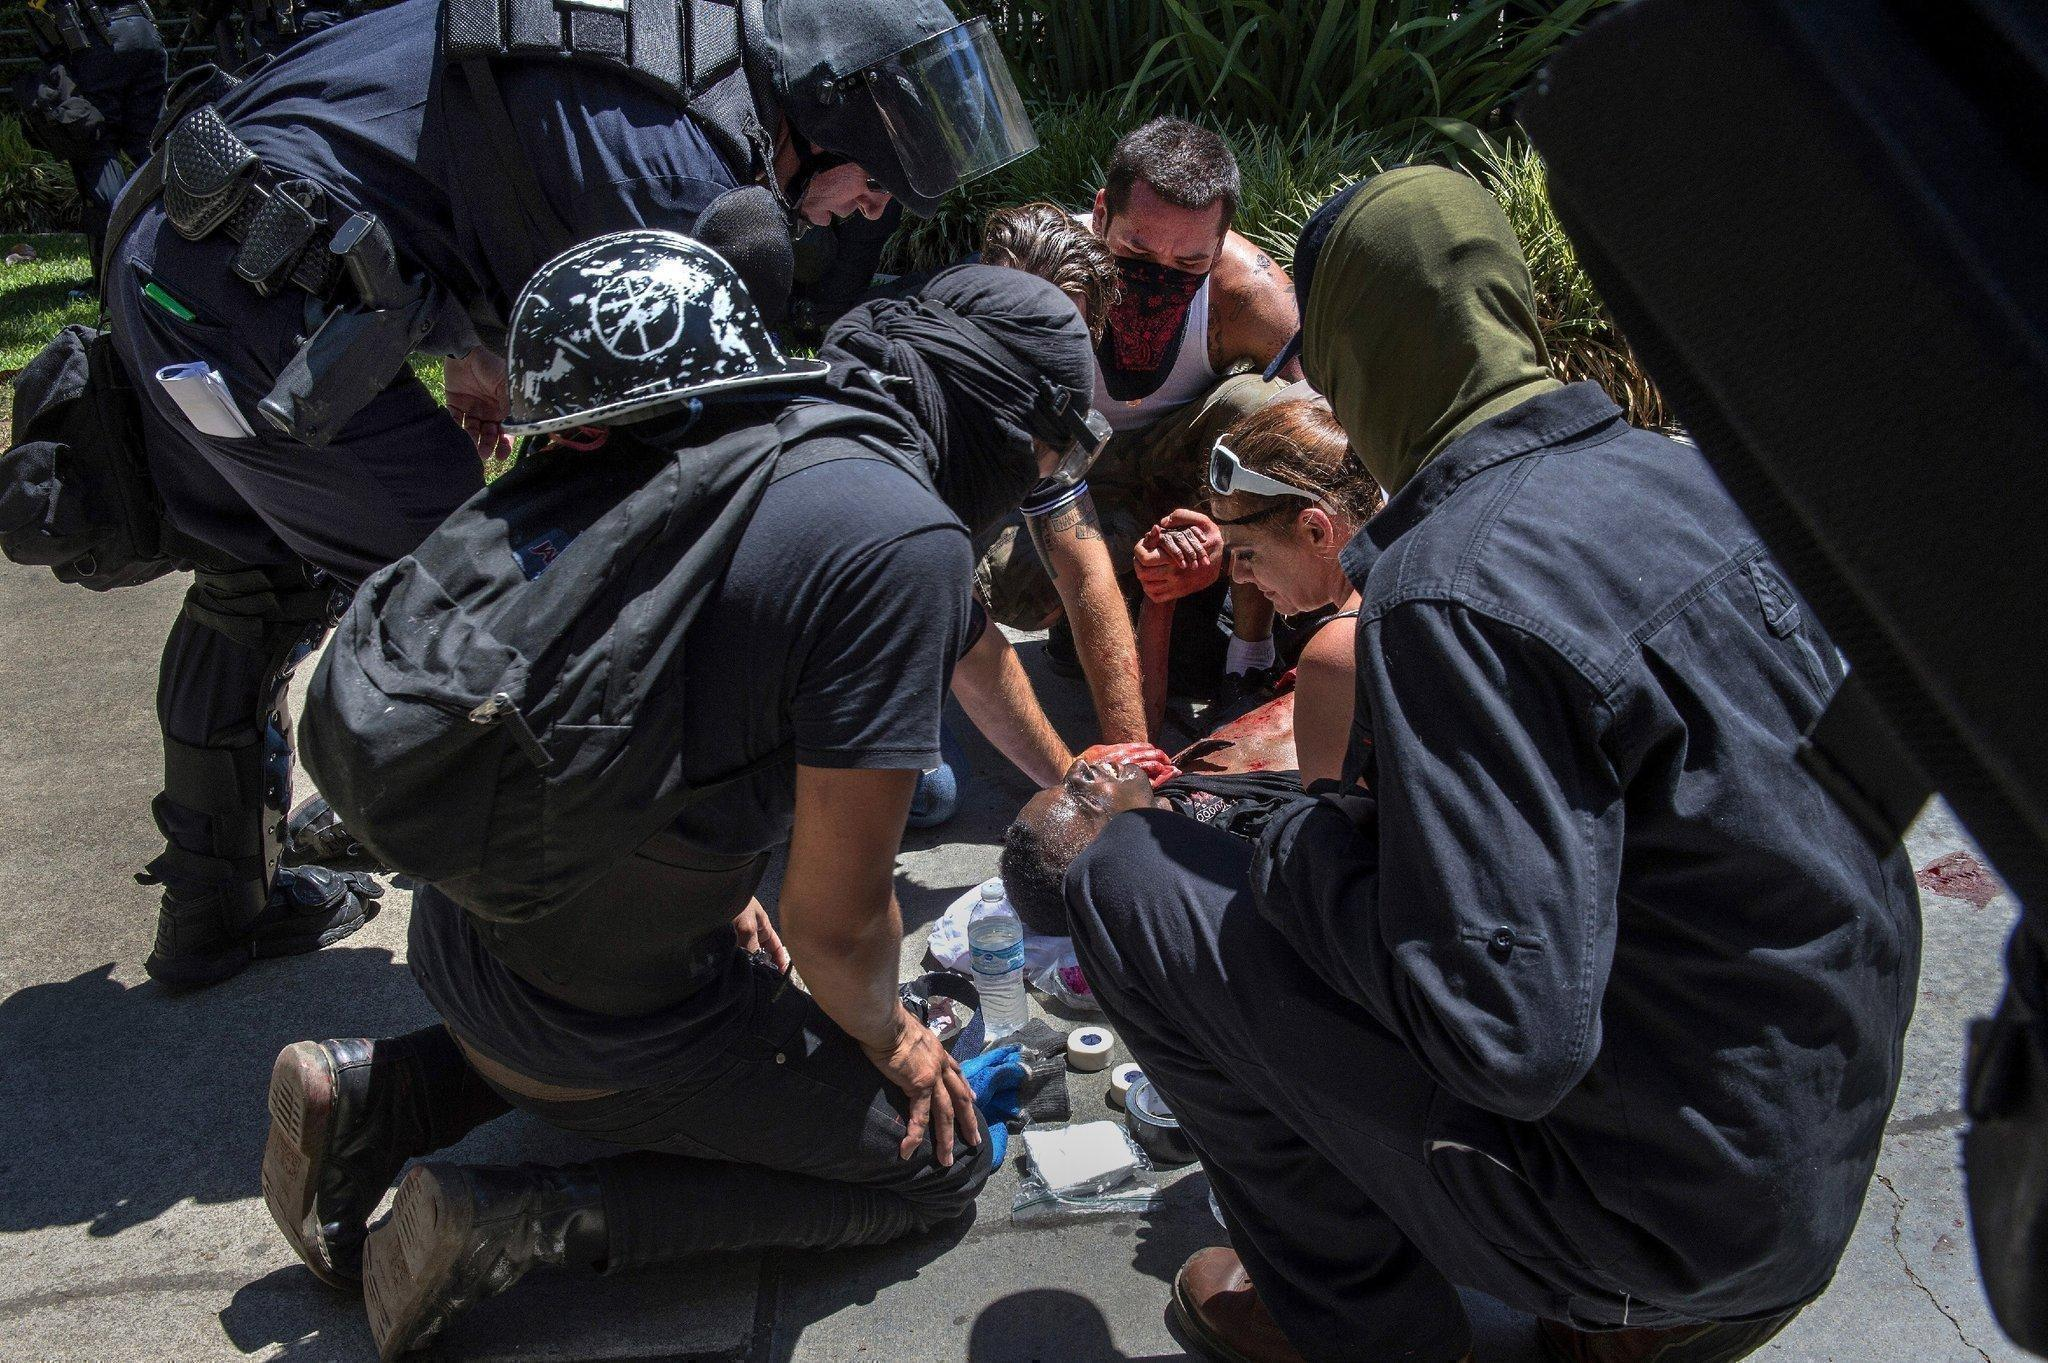 7 stabbed at neo-Nazi event outside Capitol in Sacramento